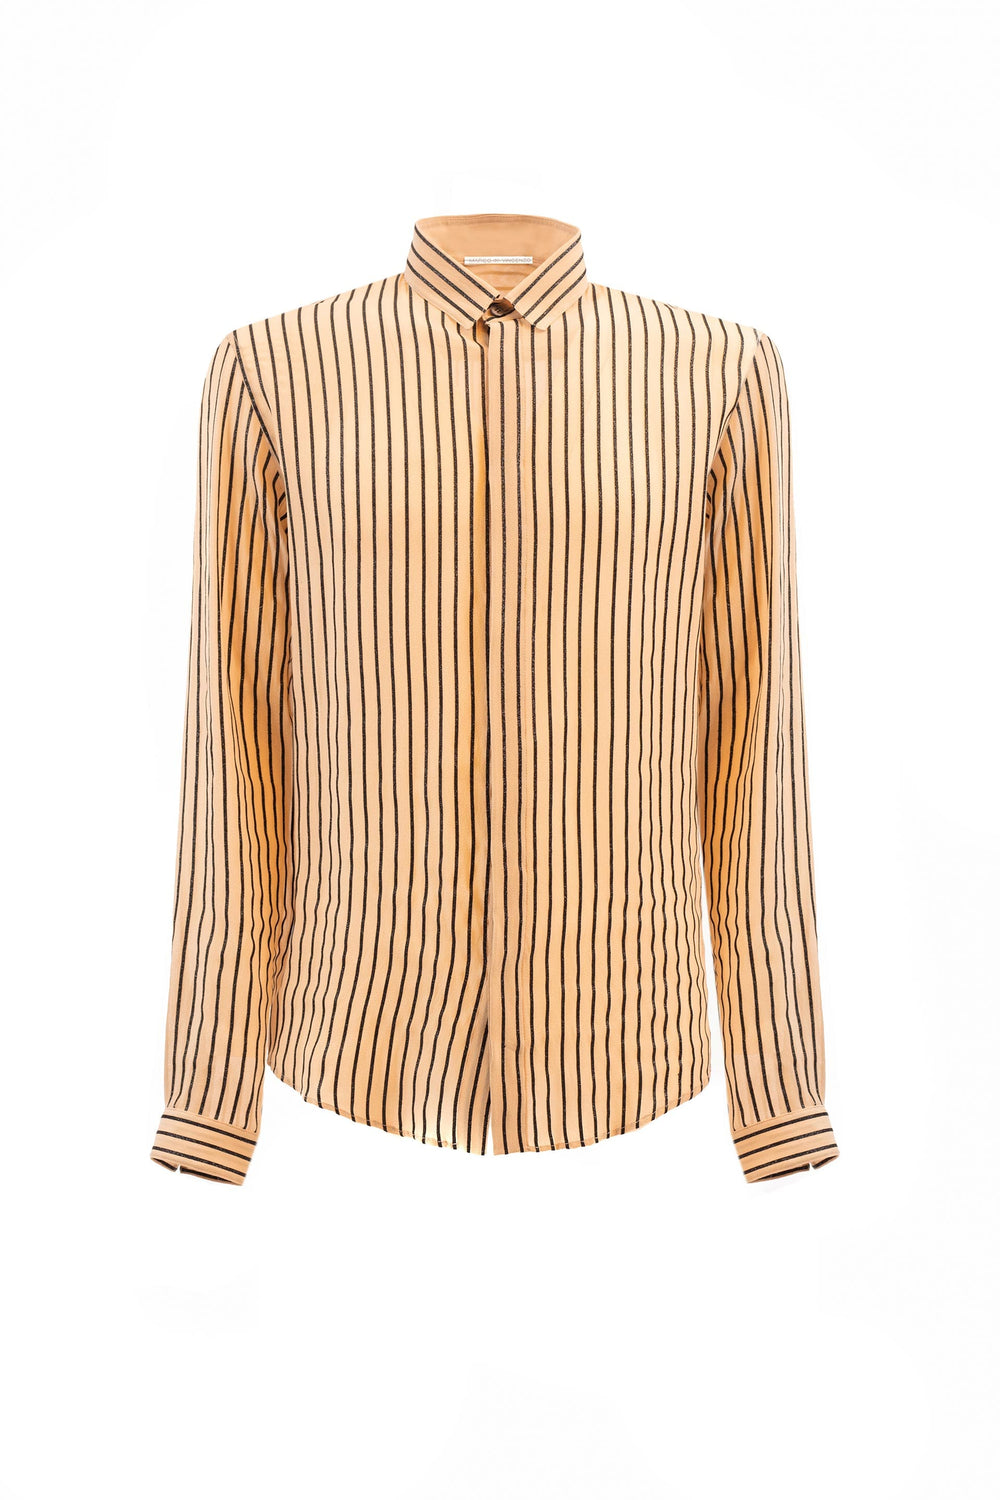 Lurex striped silk shirt.